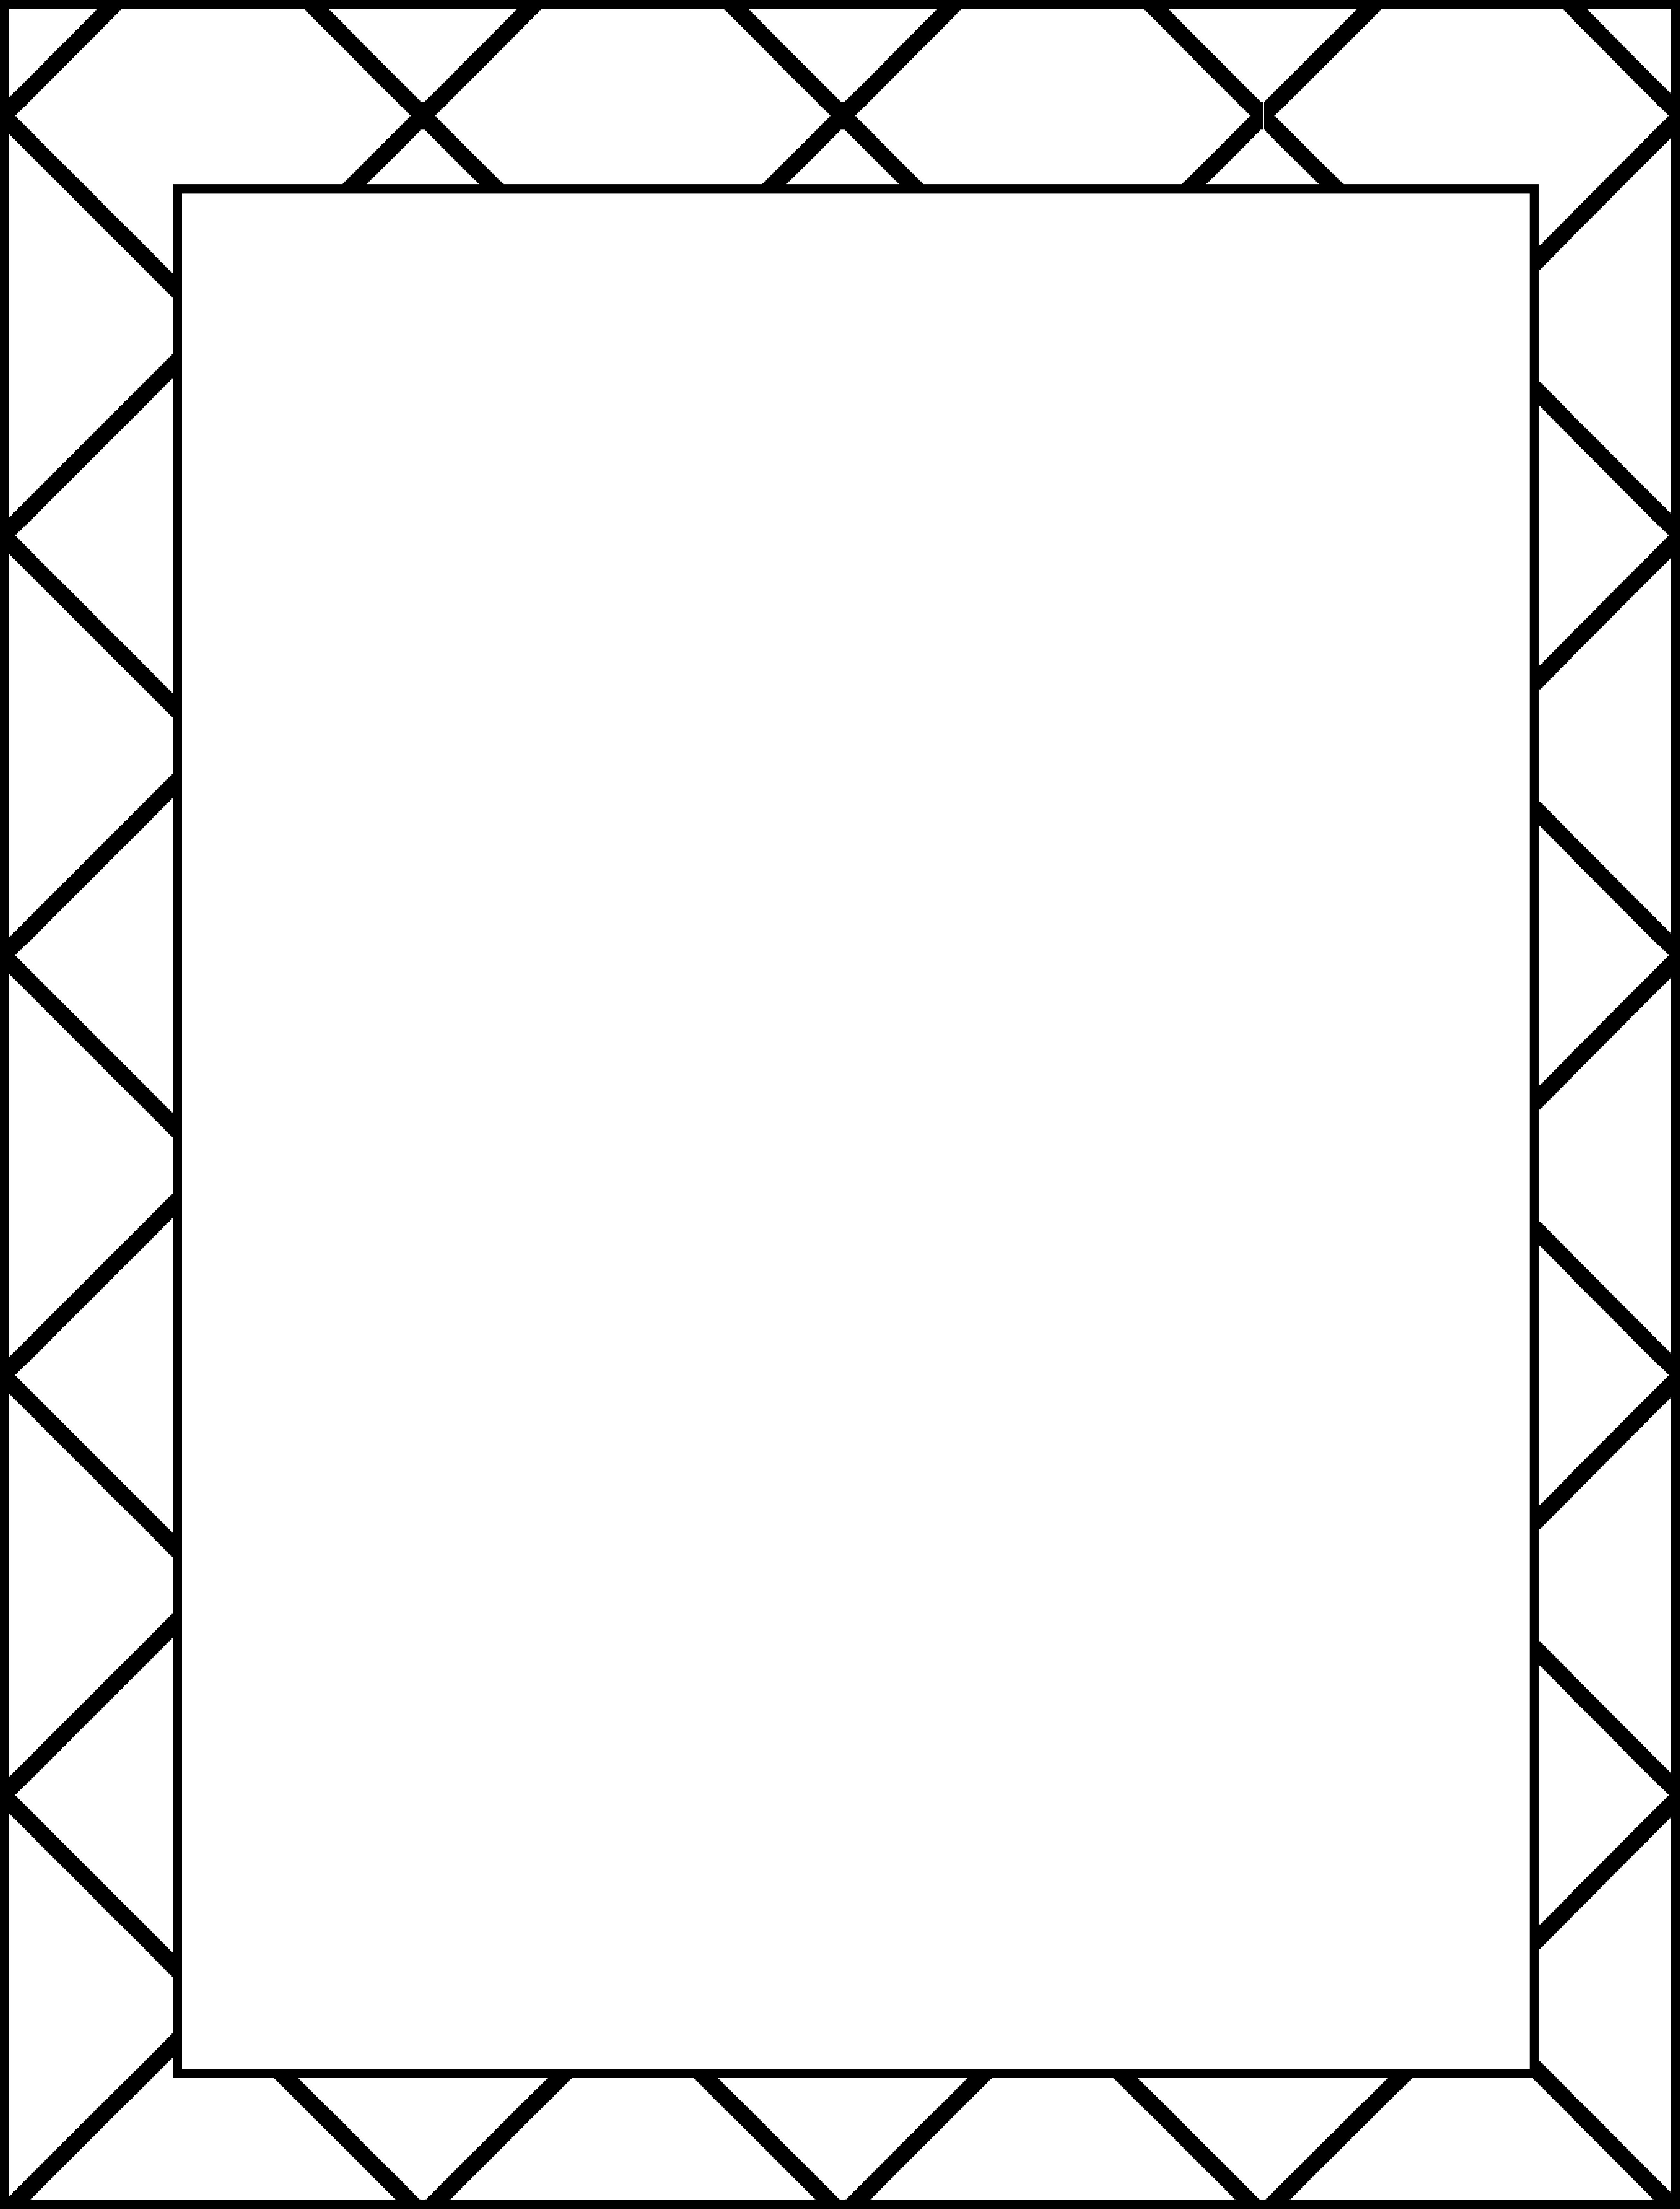 Corner Border Designs For Projects Clipart | Free download ...